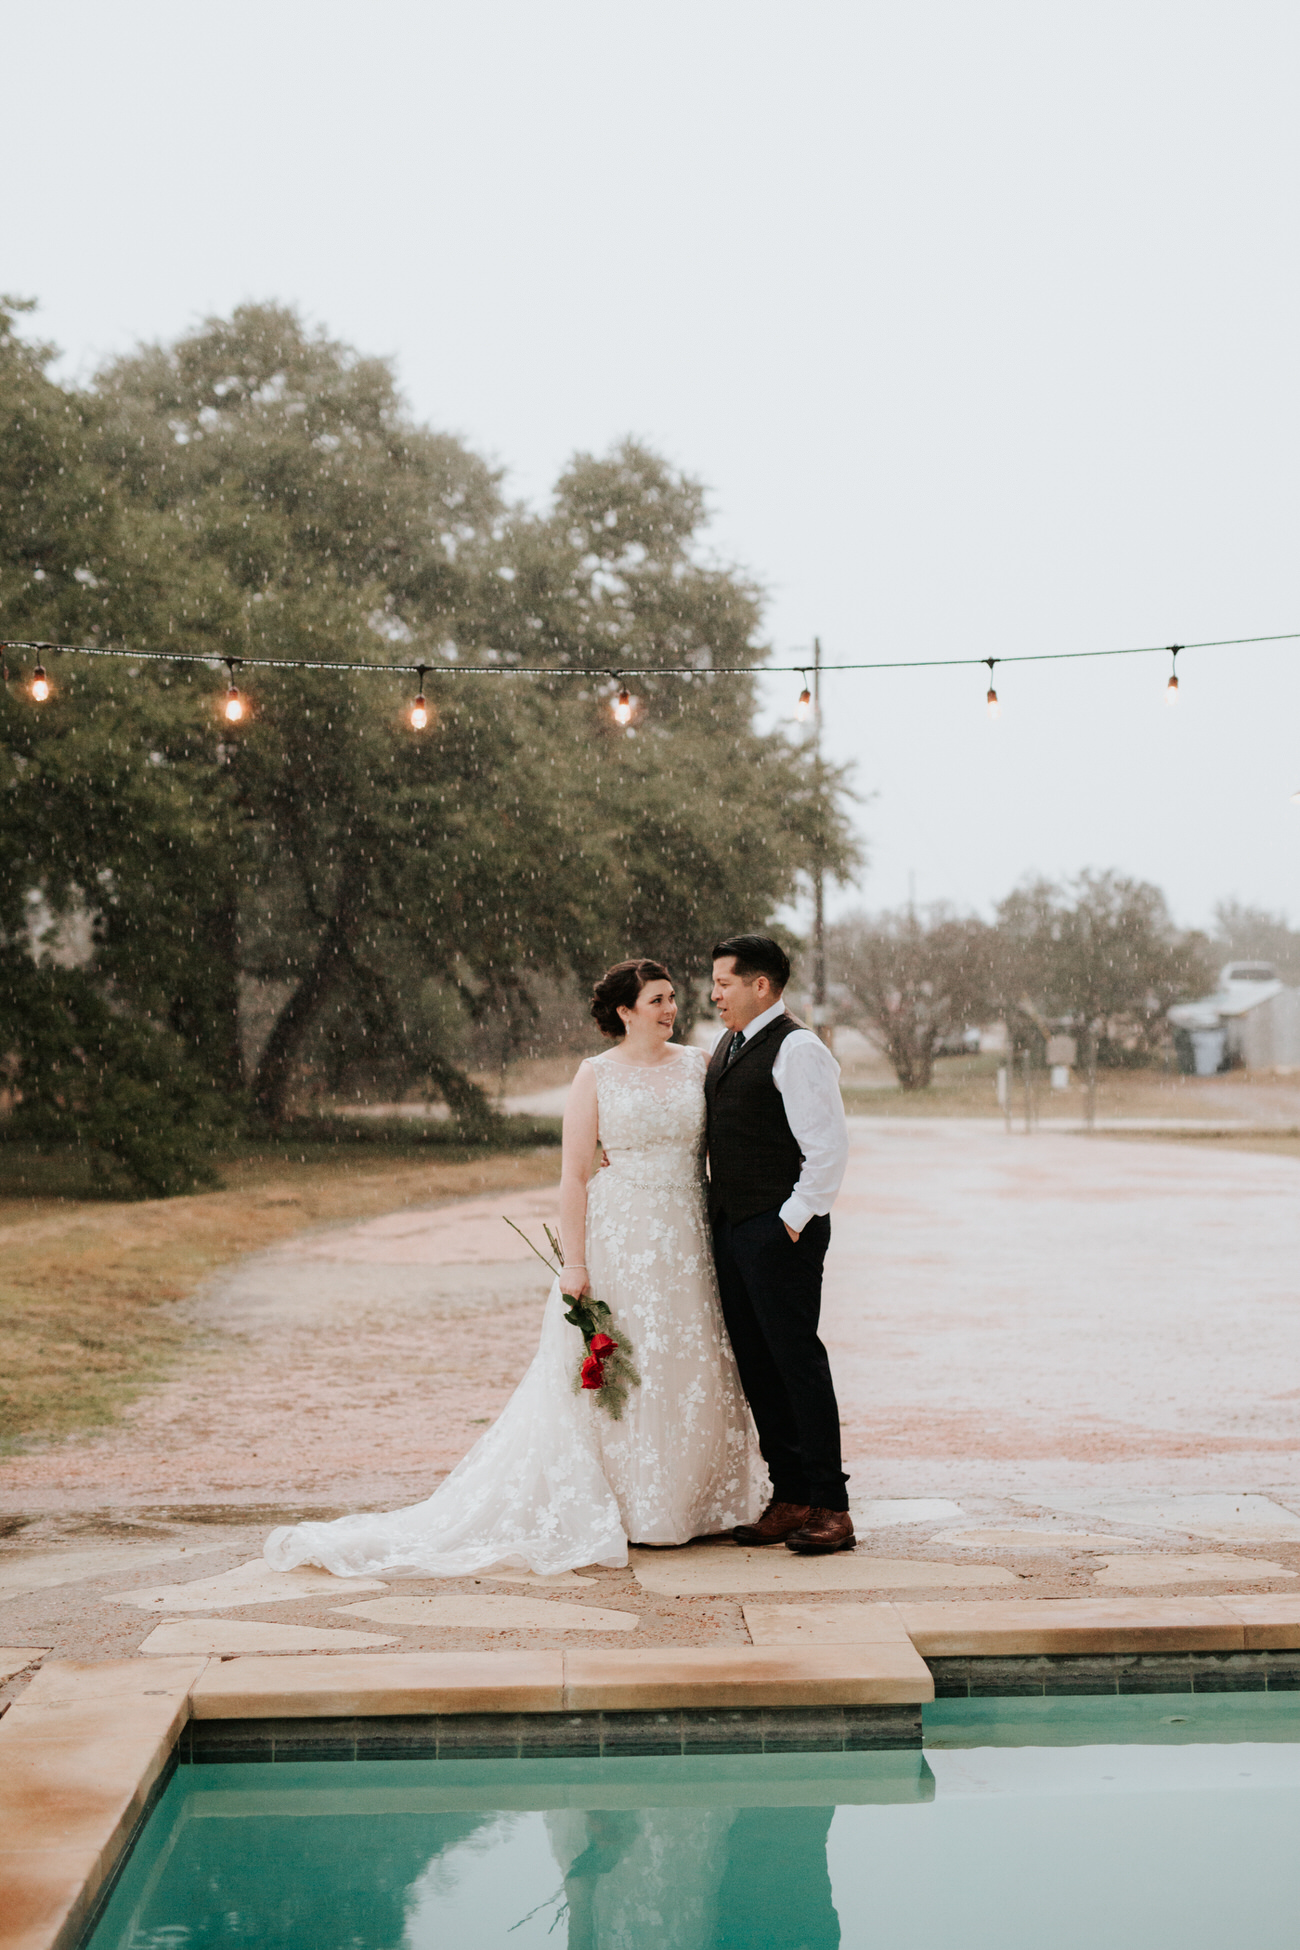 Bride and groom by pool at Christmas wedding